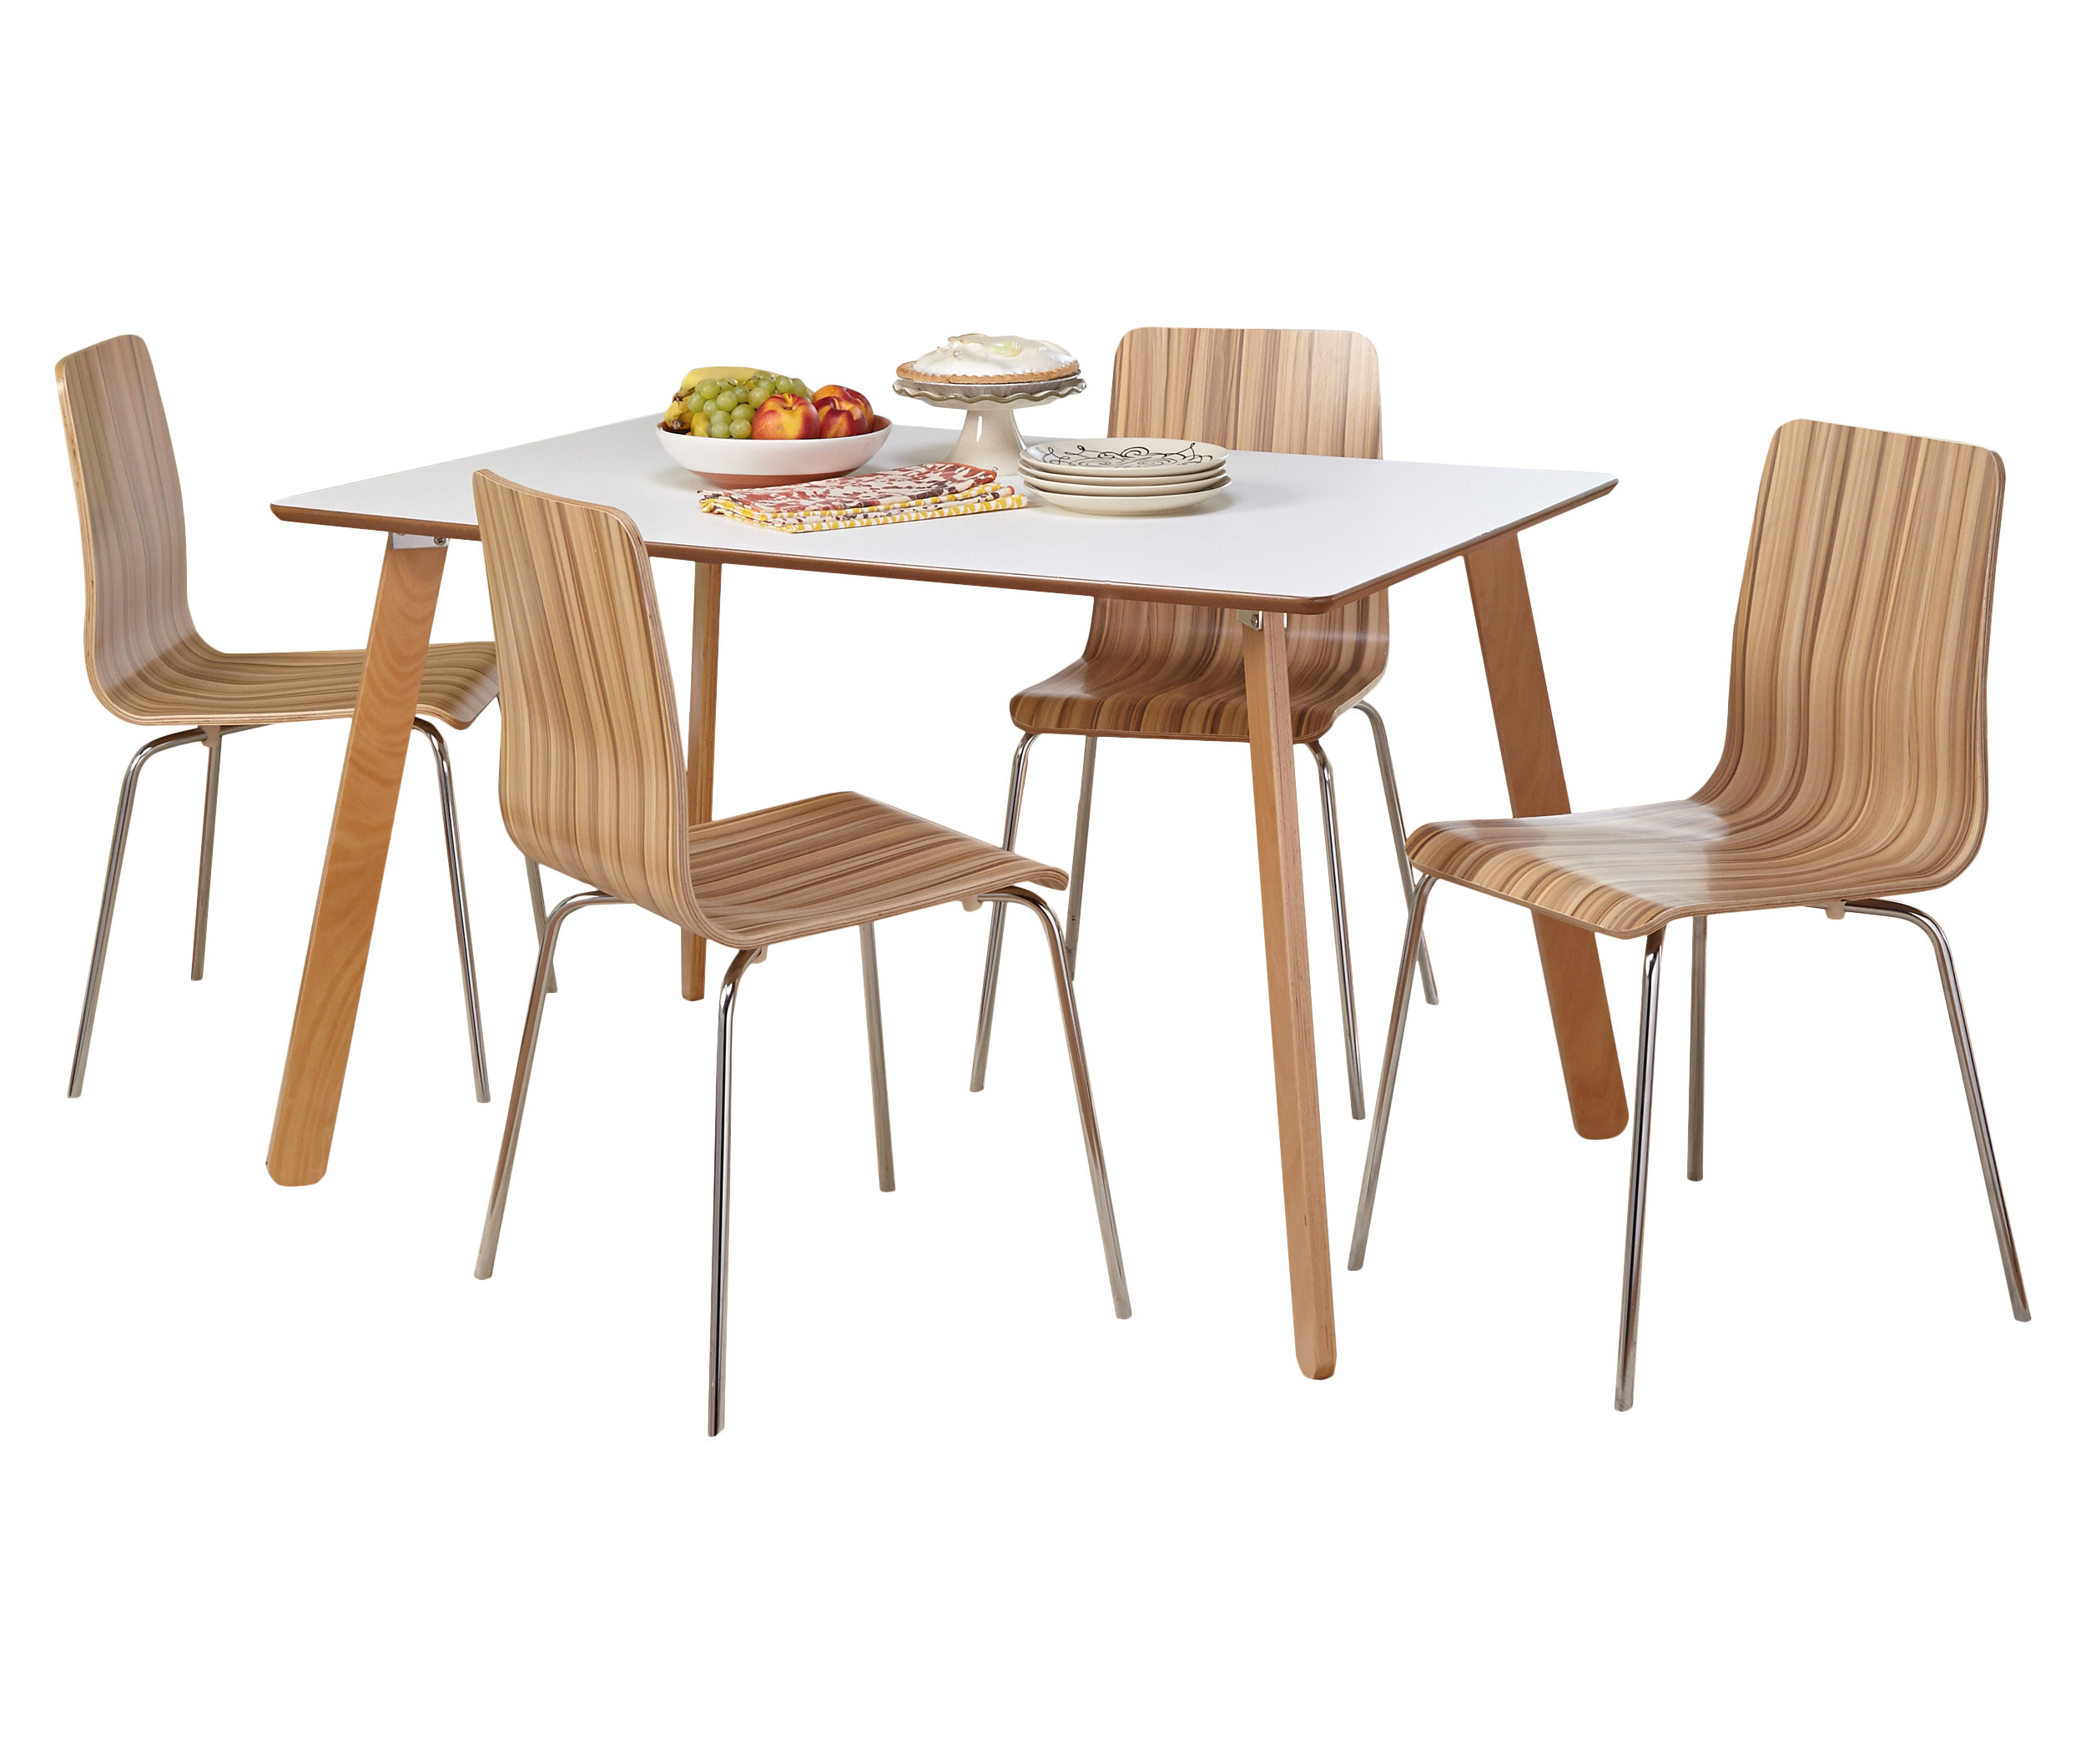 Allmodern Throughout Lillard 3 Piece Breakfast Nook Dining Sets (View 19 of 25)